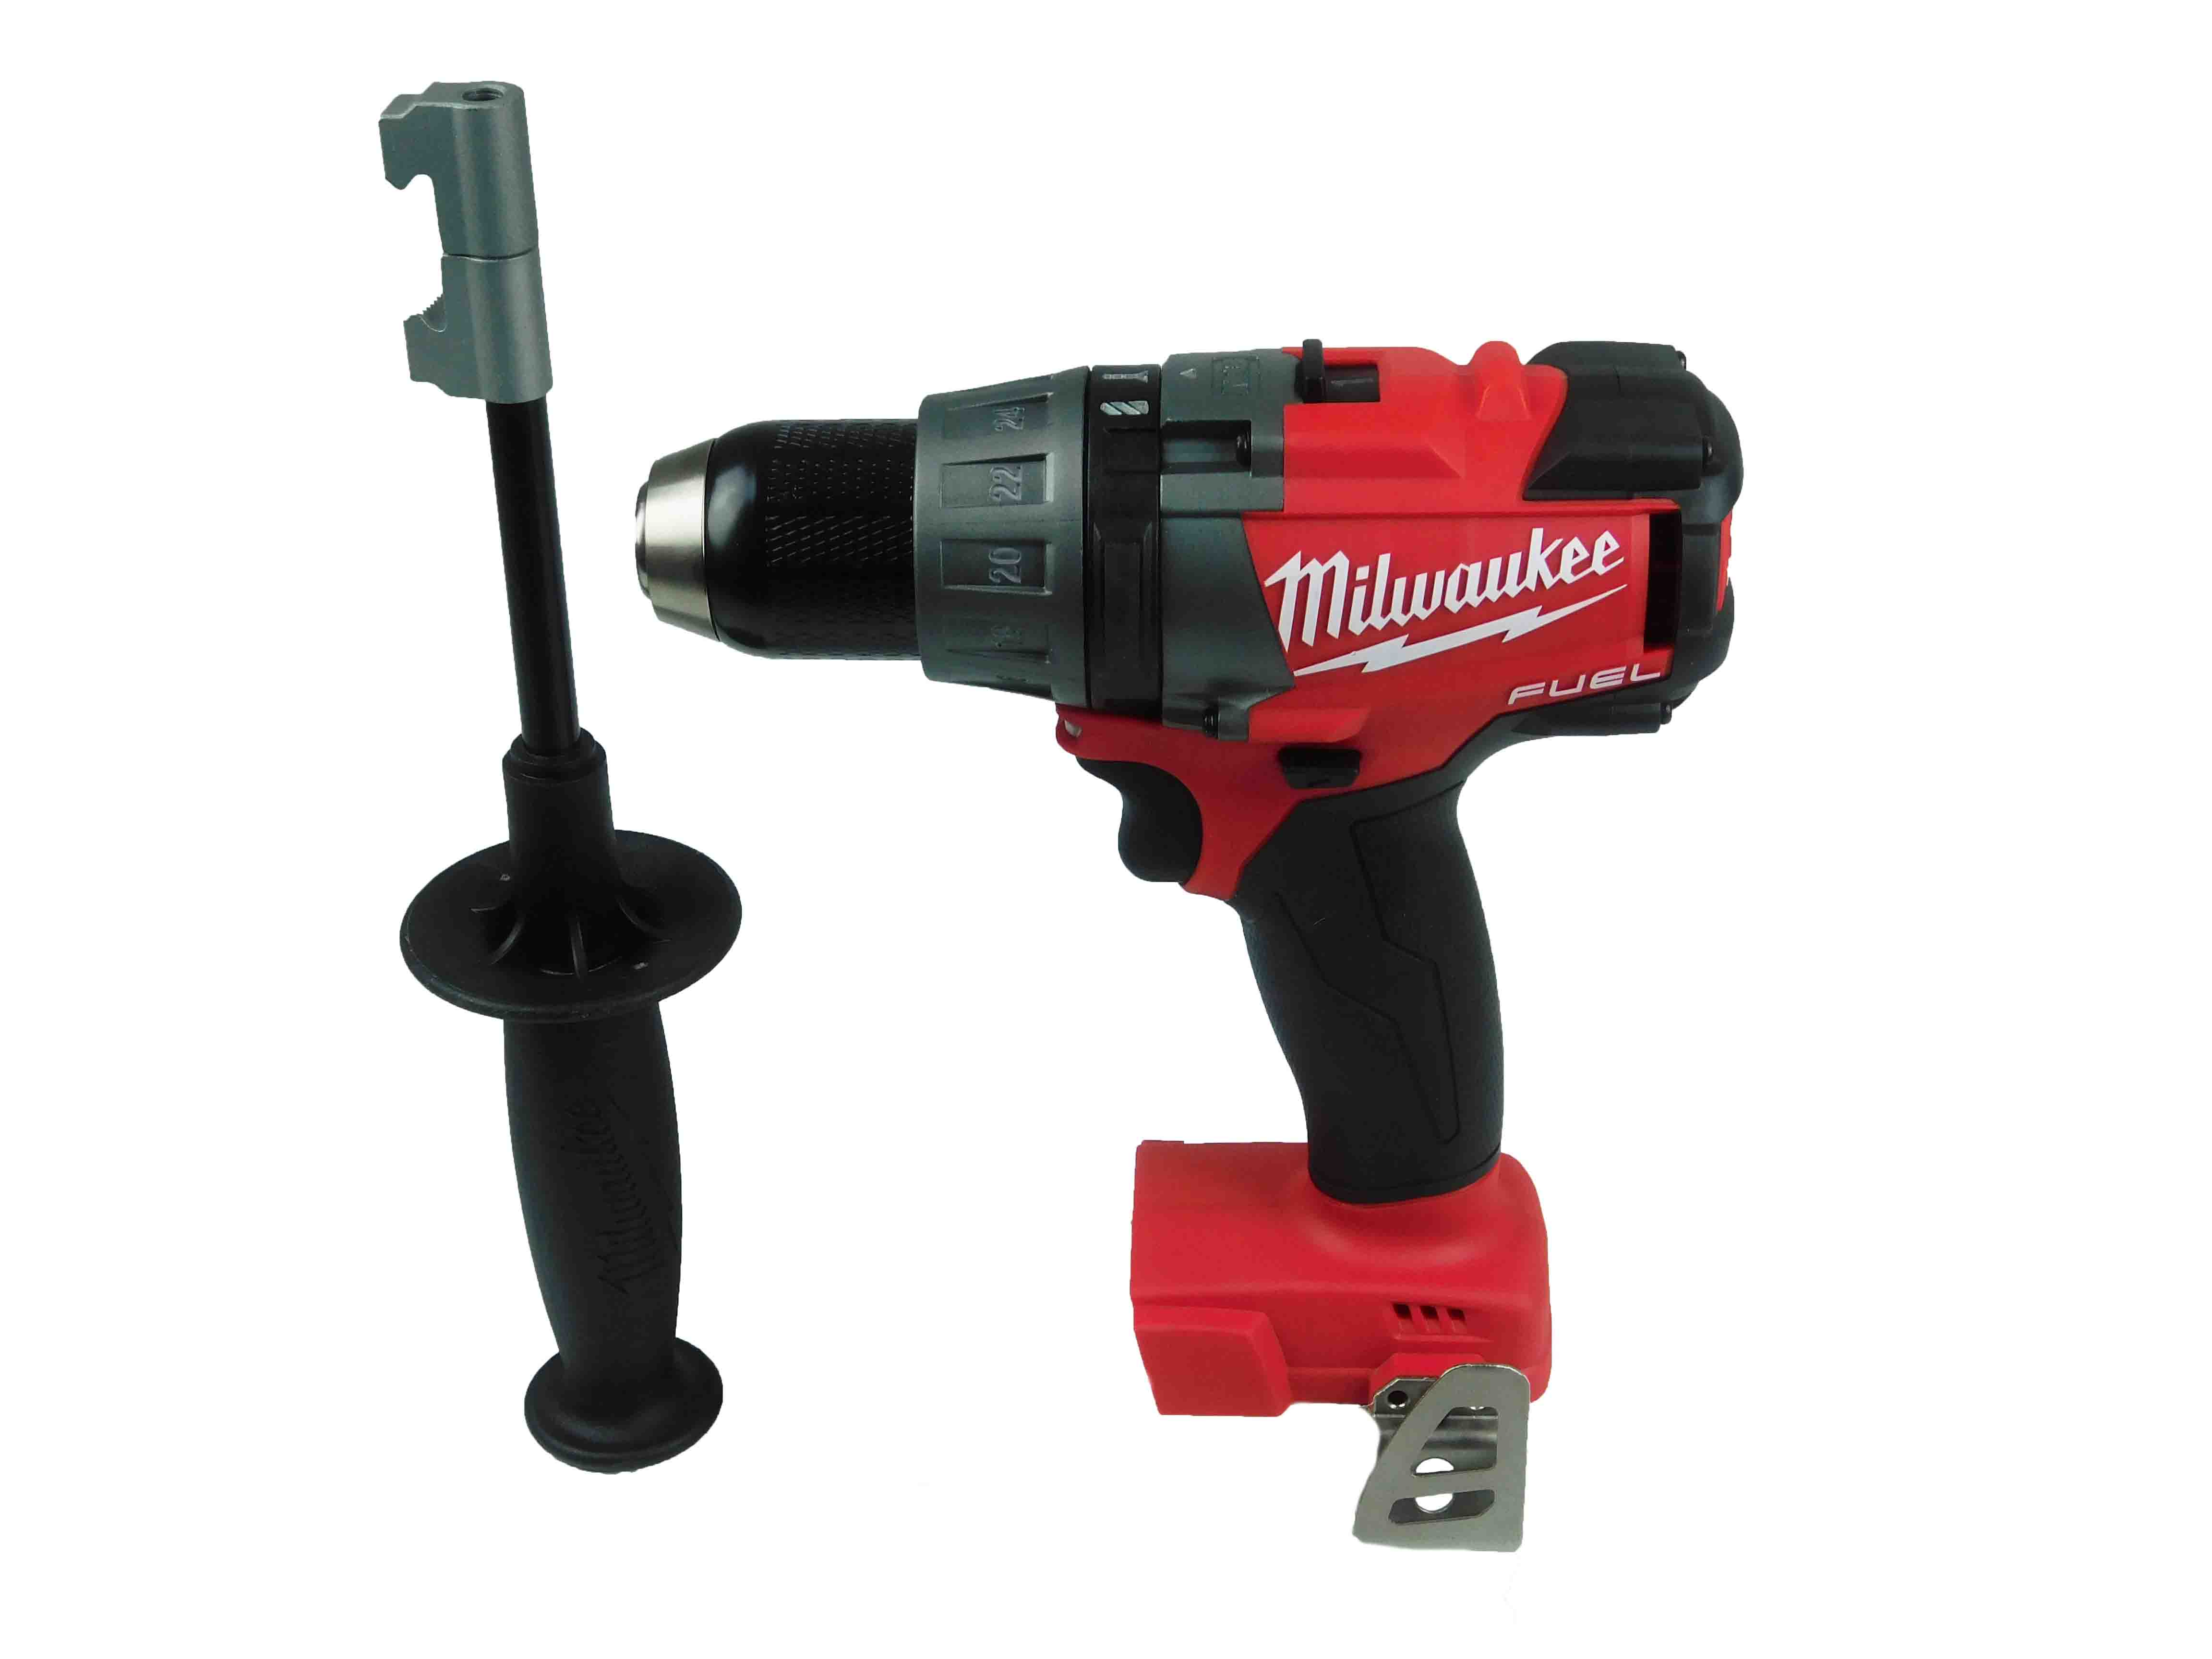 Milwaukee-2703-20-M18-Compact-1-2-Drill-Driver-Bare-Tool-image-7